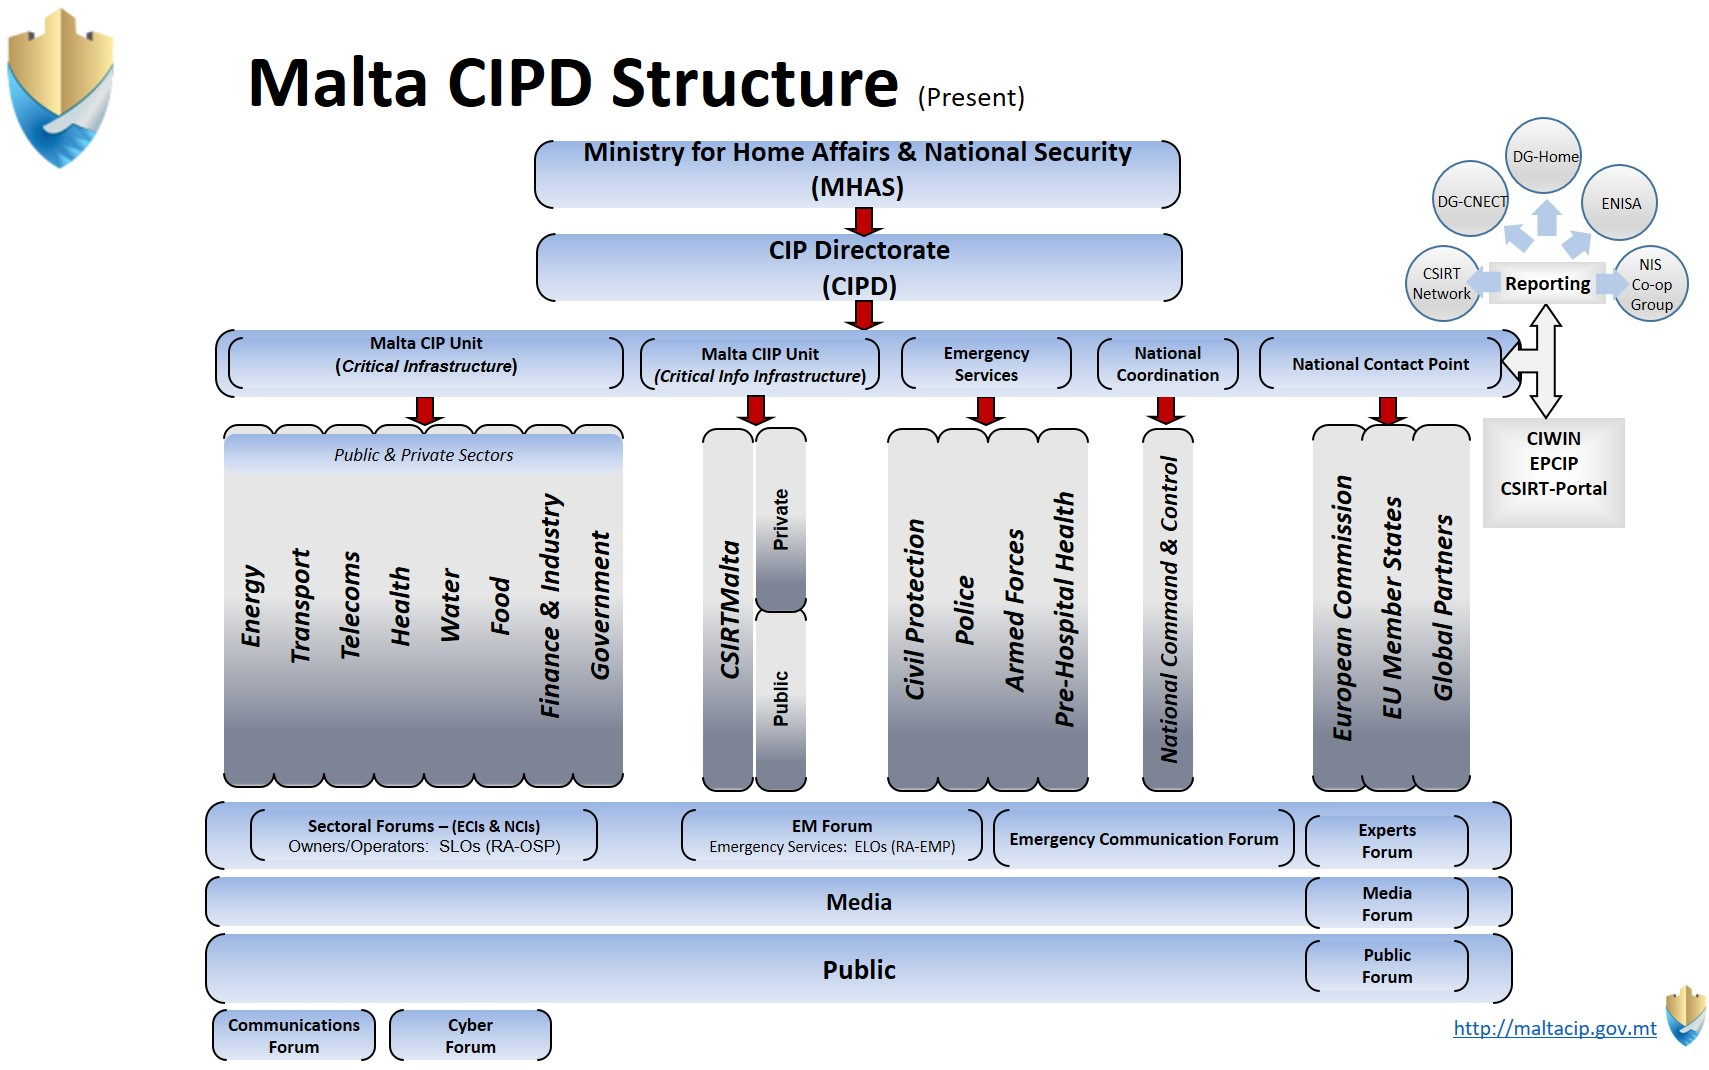 MCIPD Structure 20180801.jpg